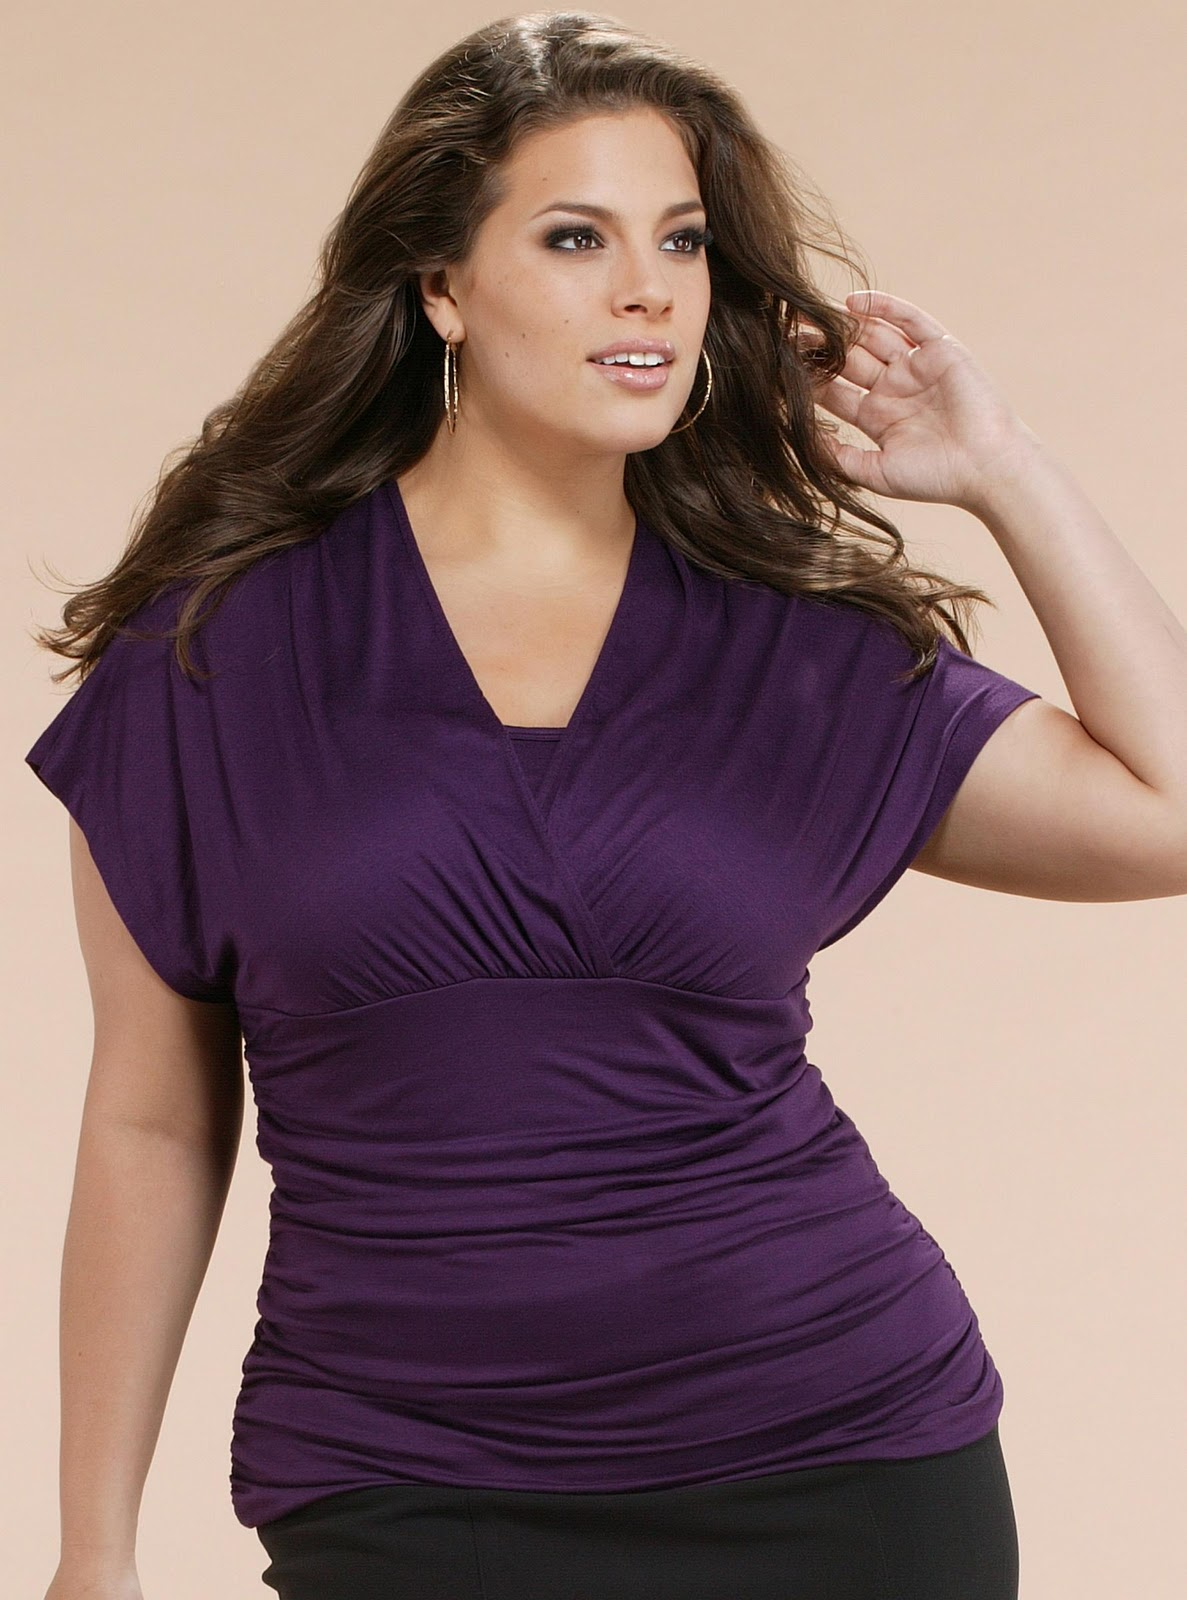 Torrid | Plus Size Fashion for Sizes 10 - 30Sizes  · Made for a Perfect Fit.